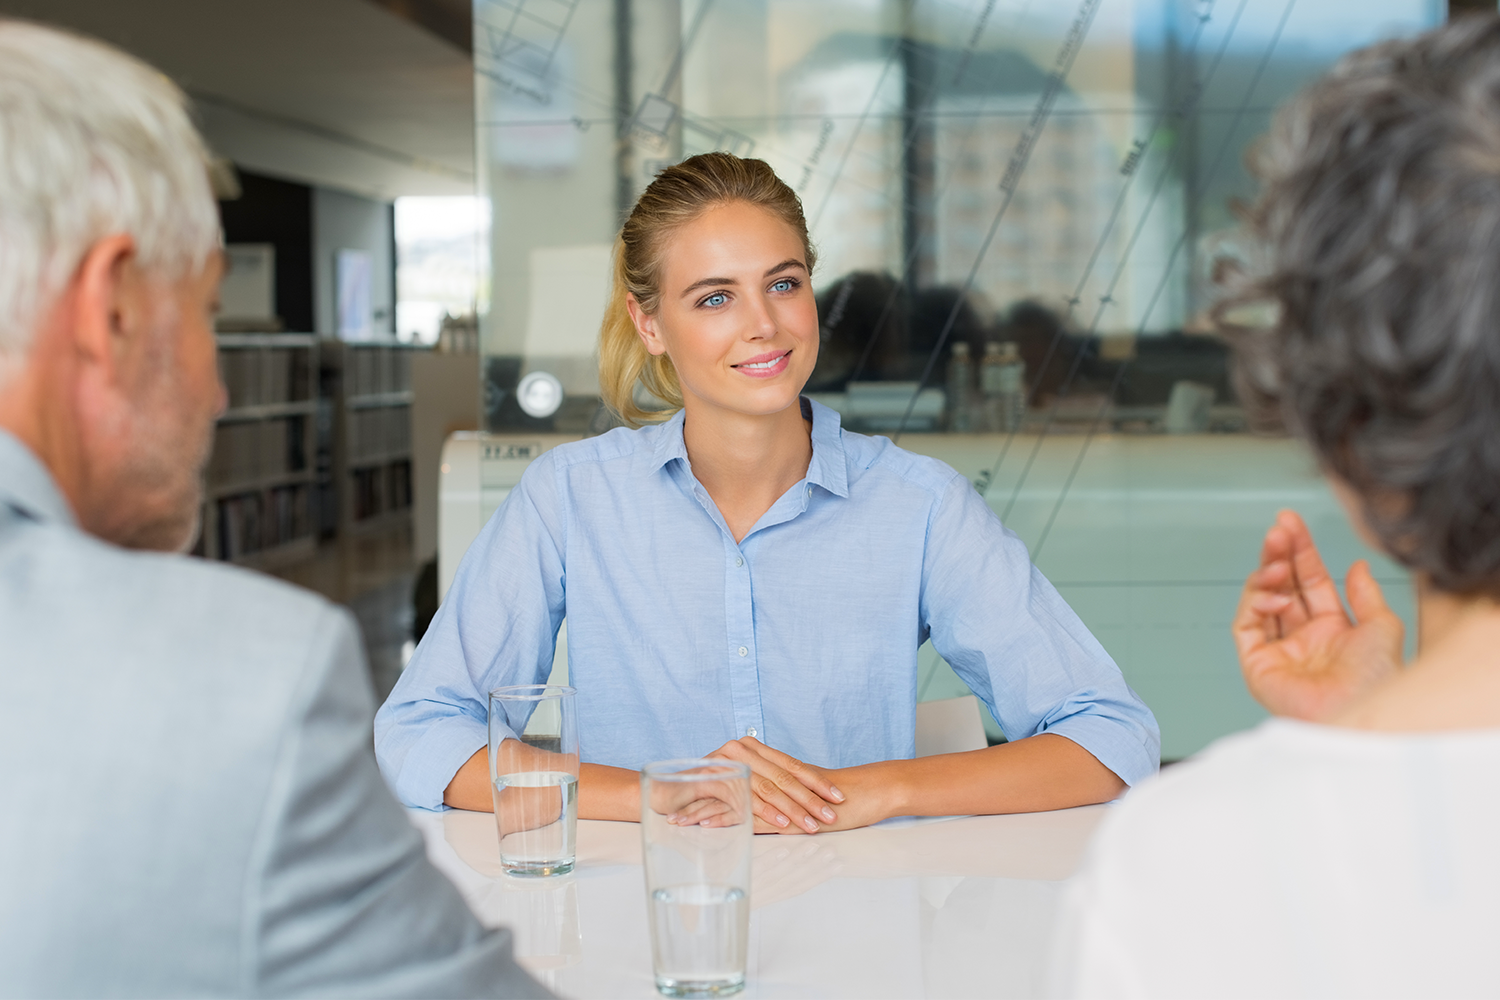 How to answer the tough questions interviewers always seem to ask